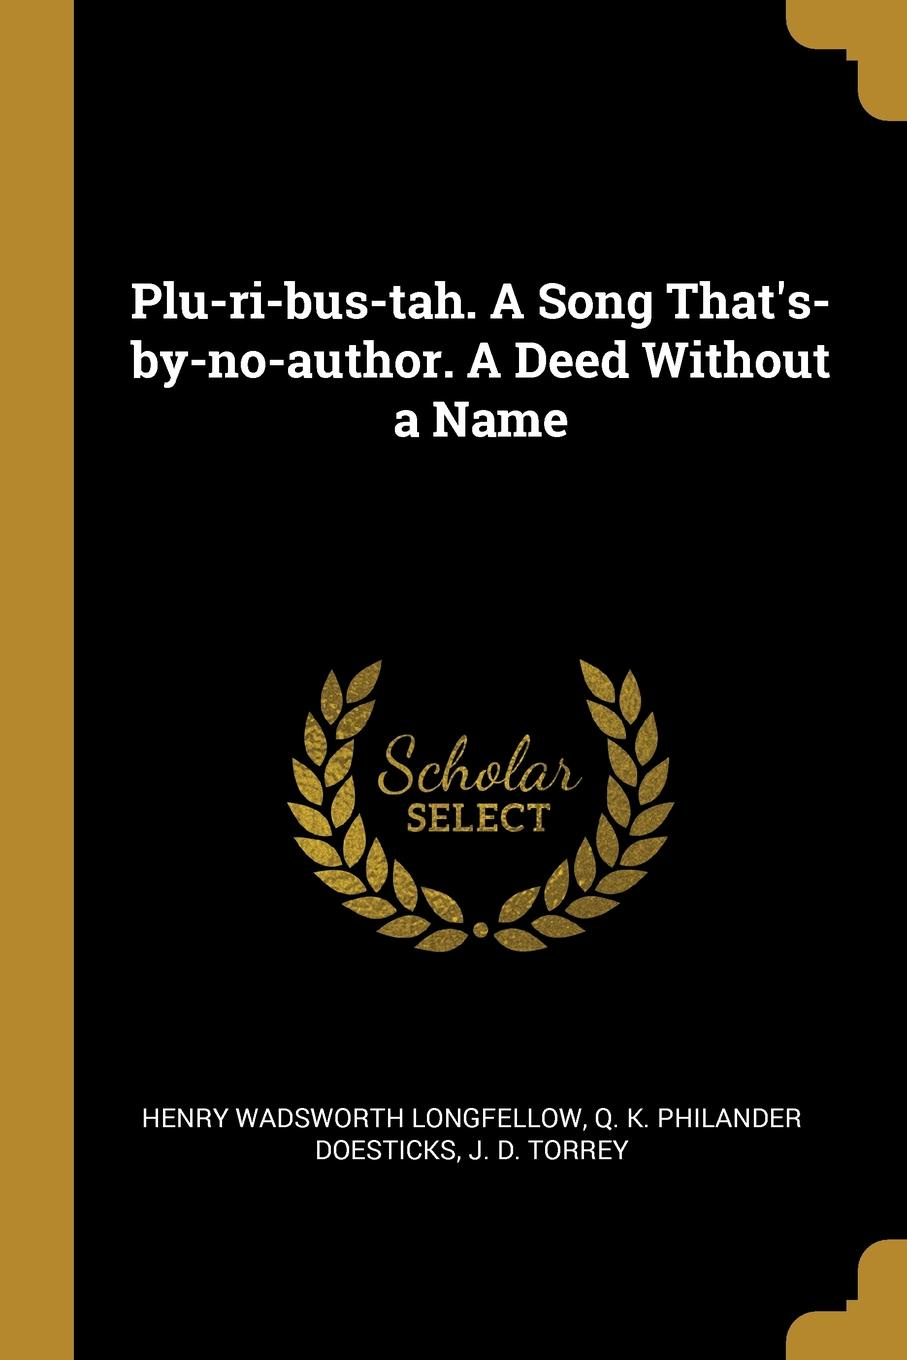 Henry Wadsworth Longfellow, Q. K. Philander Doesticks, J. D. Torrey Plu-ri-bus-tah. A Song That.s-by-no-author. A Deed Without a Name q k philander doesticks plu ri bus tah a song that s by no author a deed without a name